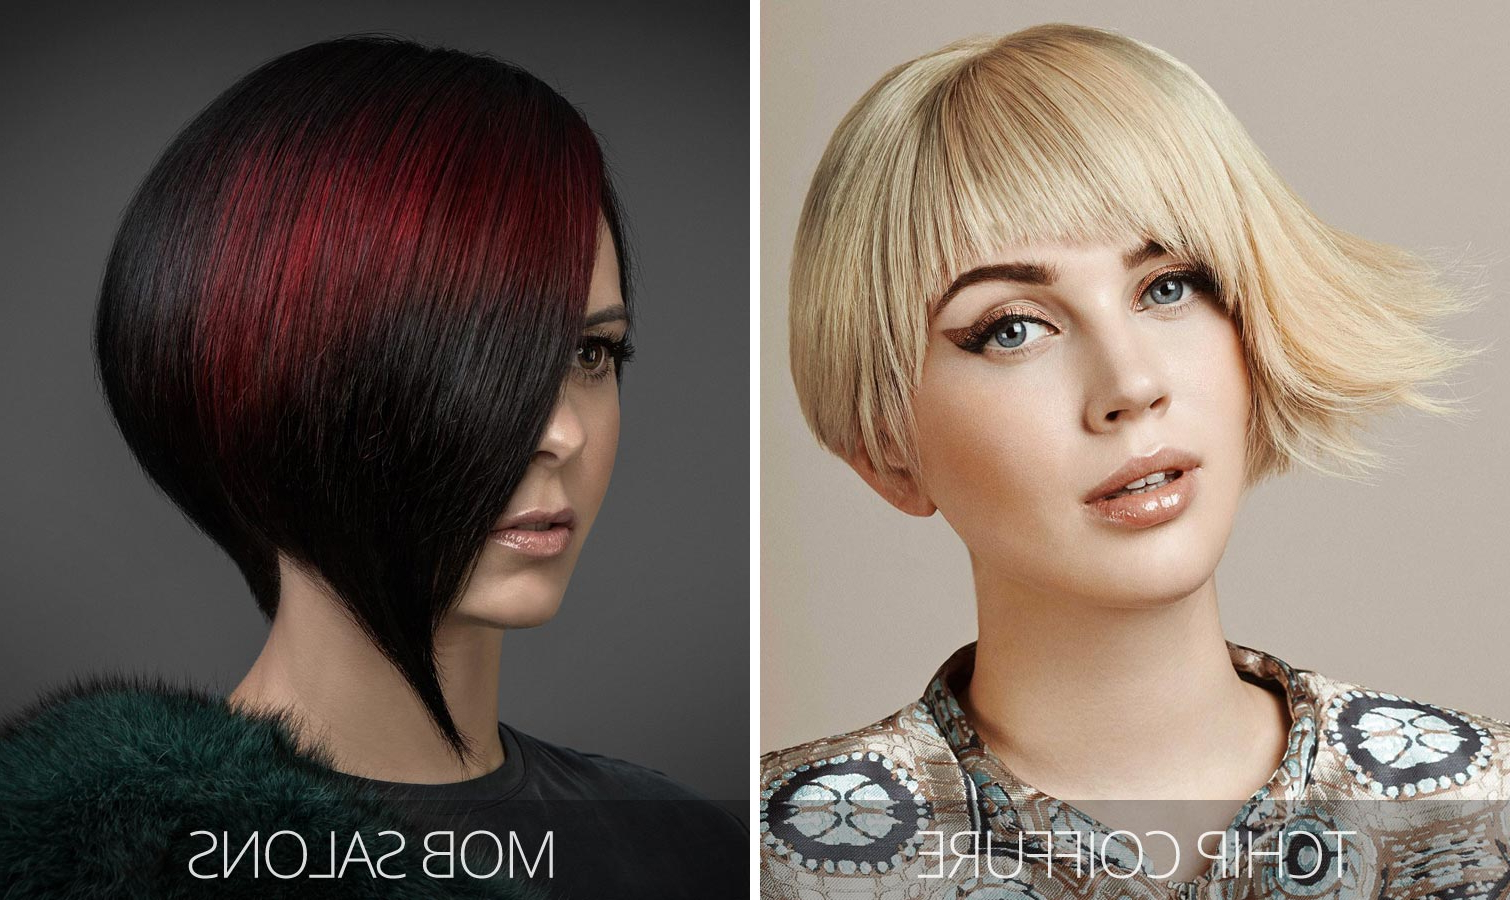 Find Out Full Gallery Of Awesome Short Asymmetrical Haircuts 2014 Intended For Asymmetrical Short Hairstyles (View 21 of 25)